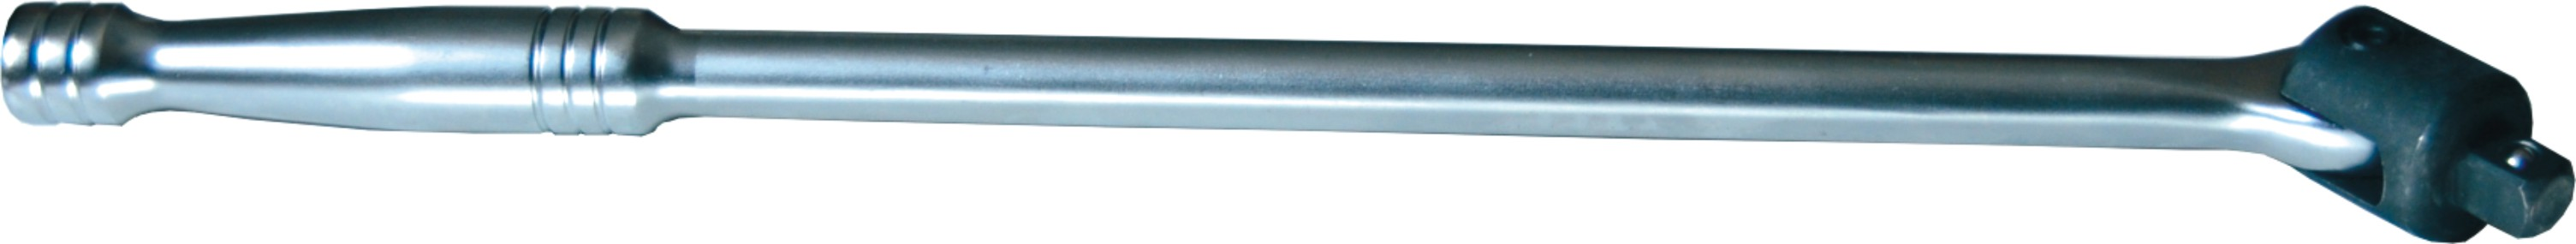 "A67309 - 3/4"" Sq. Dr. Breaker Bar 600mm"